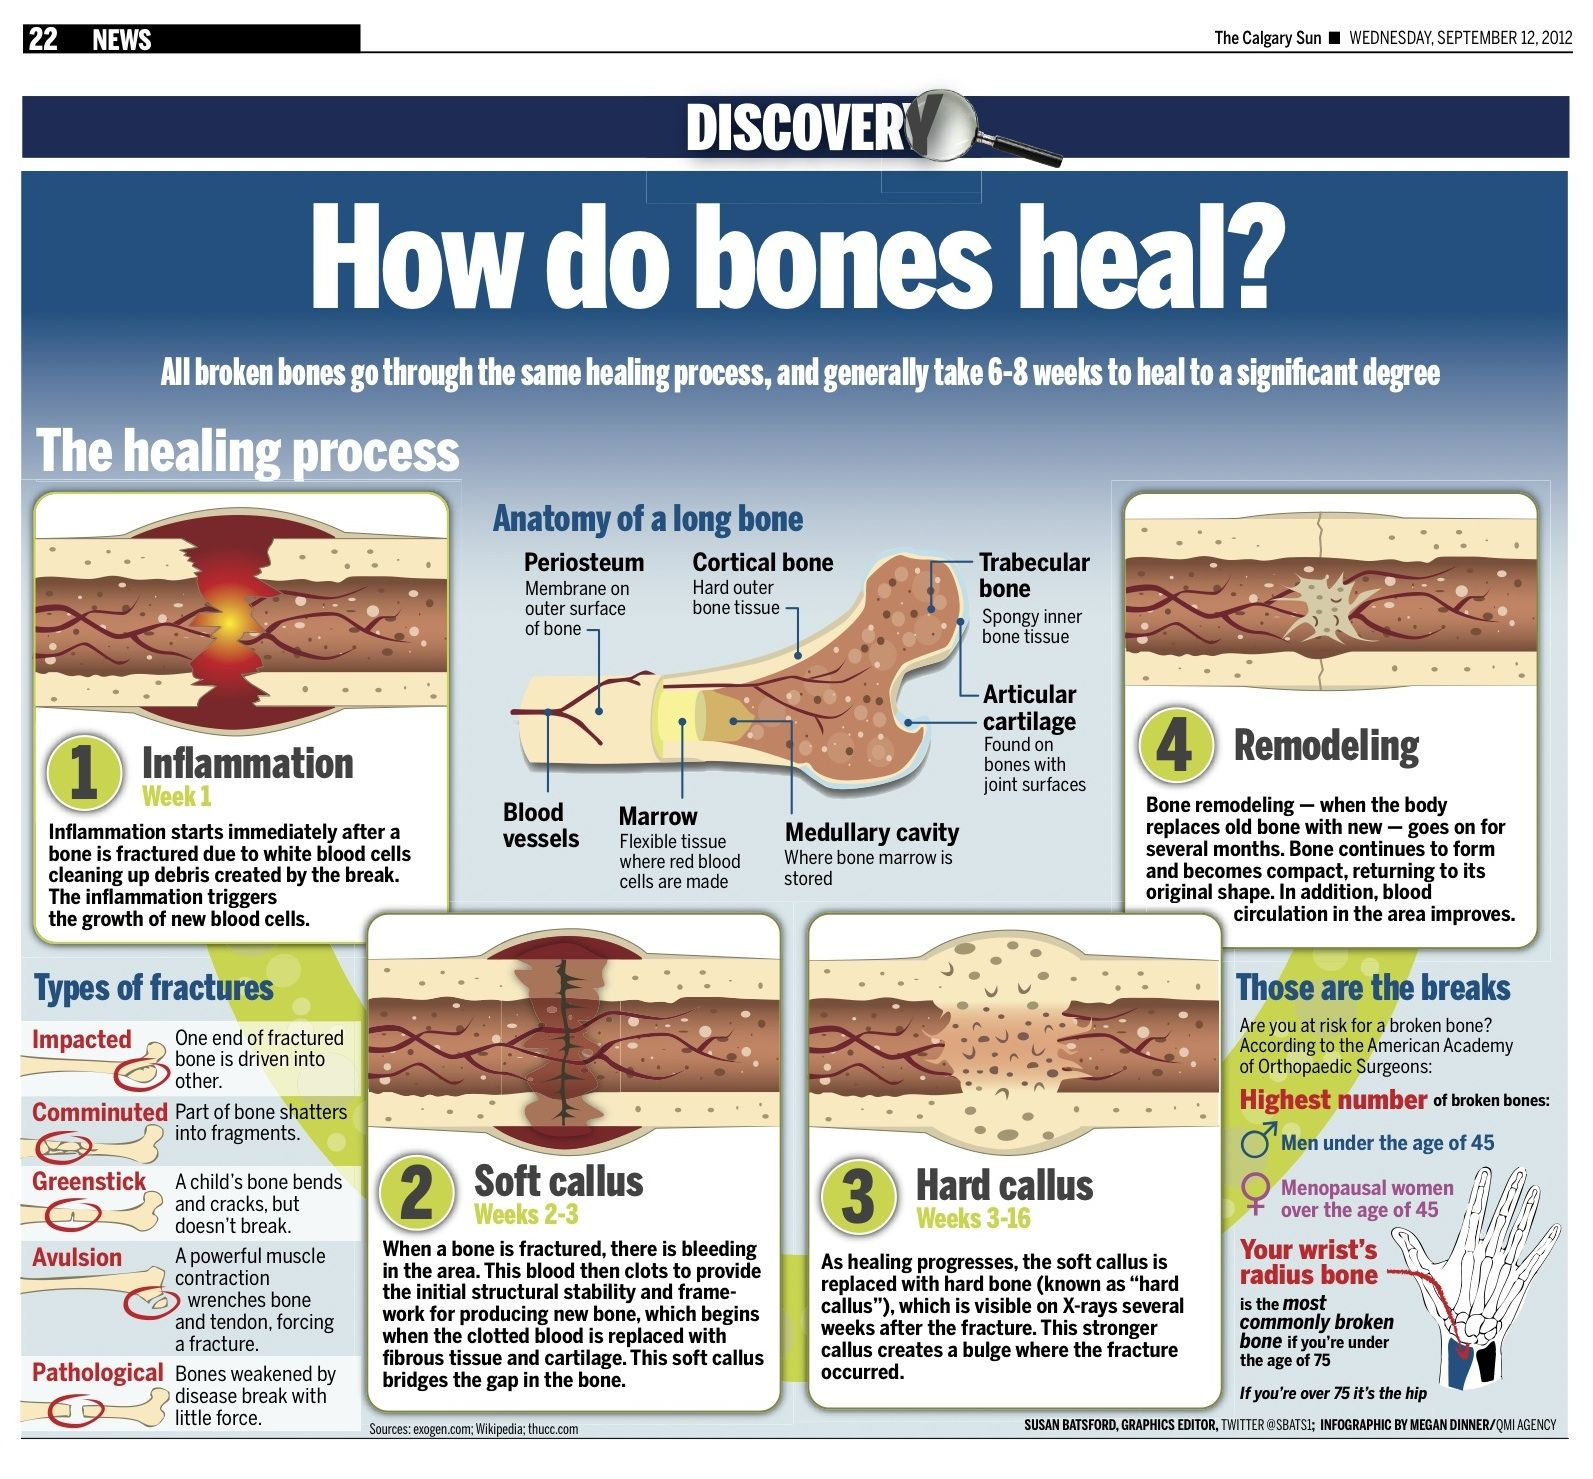 healing process of a bone fracture Getting the right vitamins is essential to the timely bone fracture healing process while protein and minerals are the building blocks for bone, vitamins are the catalysts for many of the millions of reactions involved in bone repair.